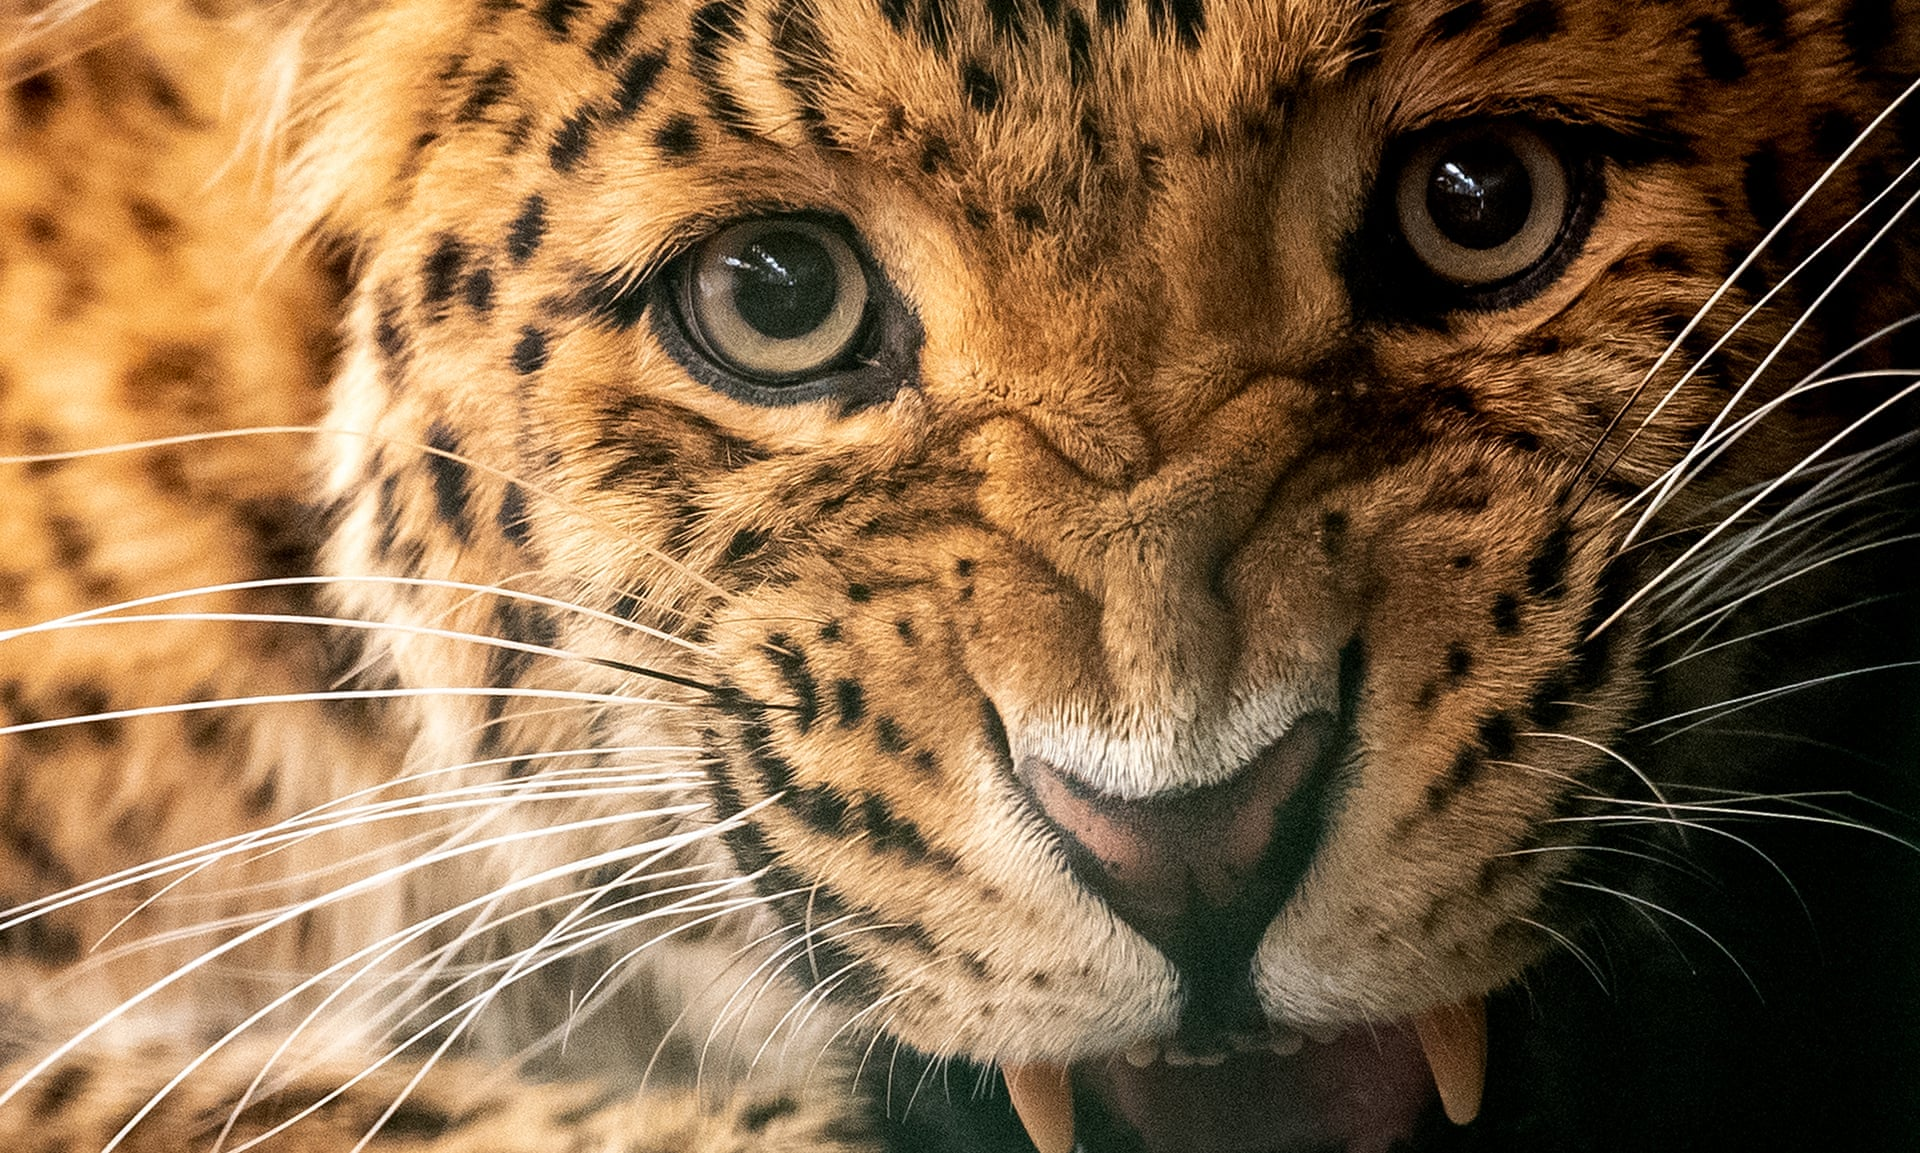 Wildlife traffickers target lion, jaguar and leopard body parts as tiger substitutes